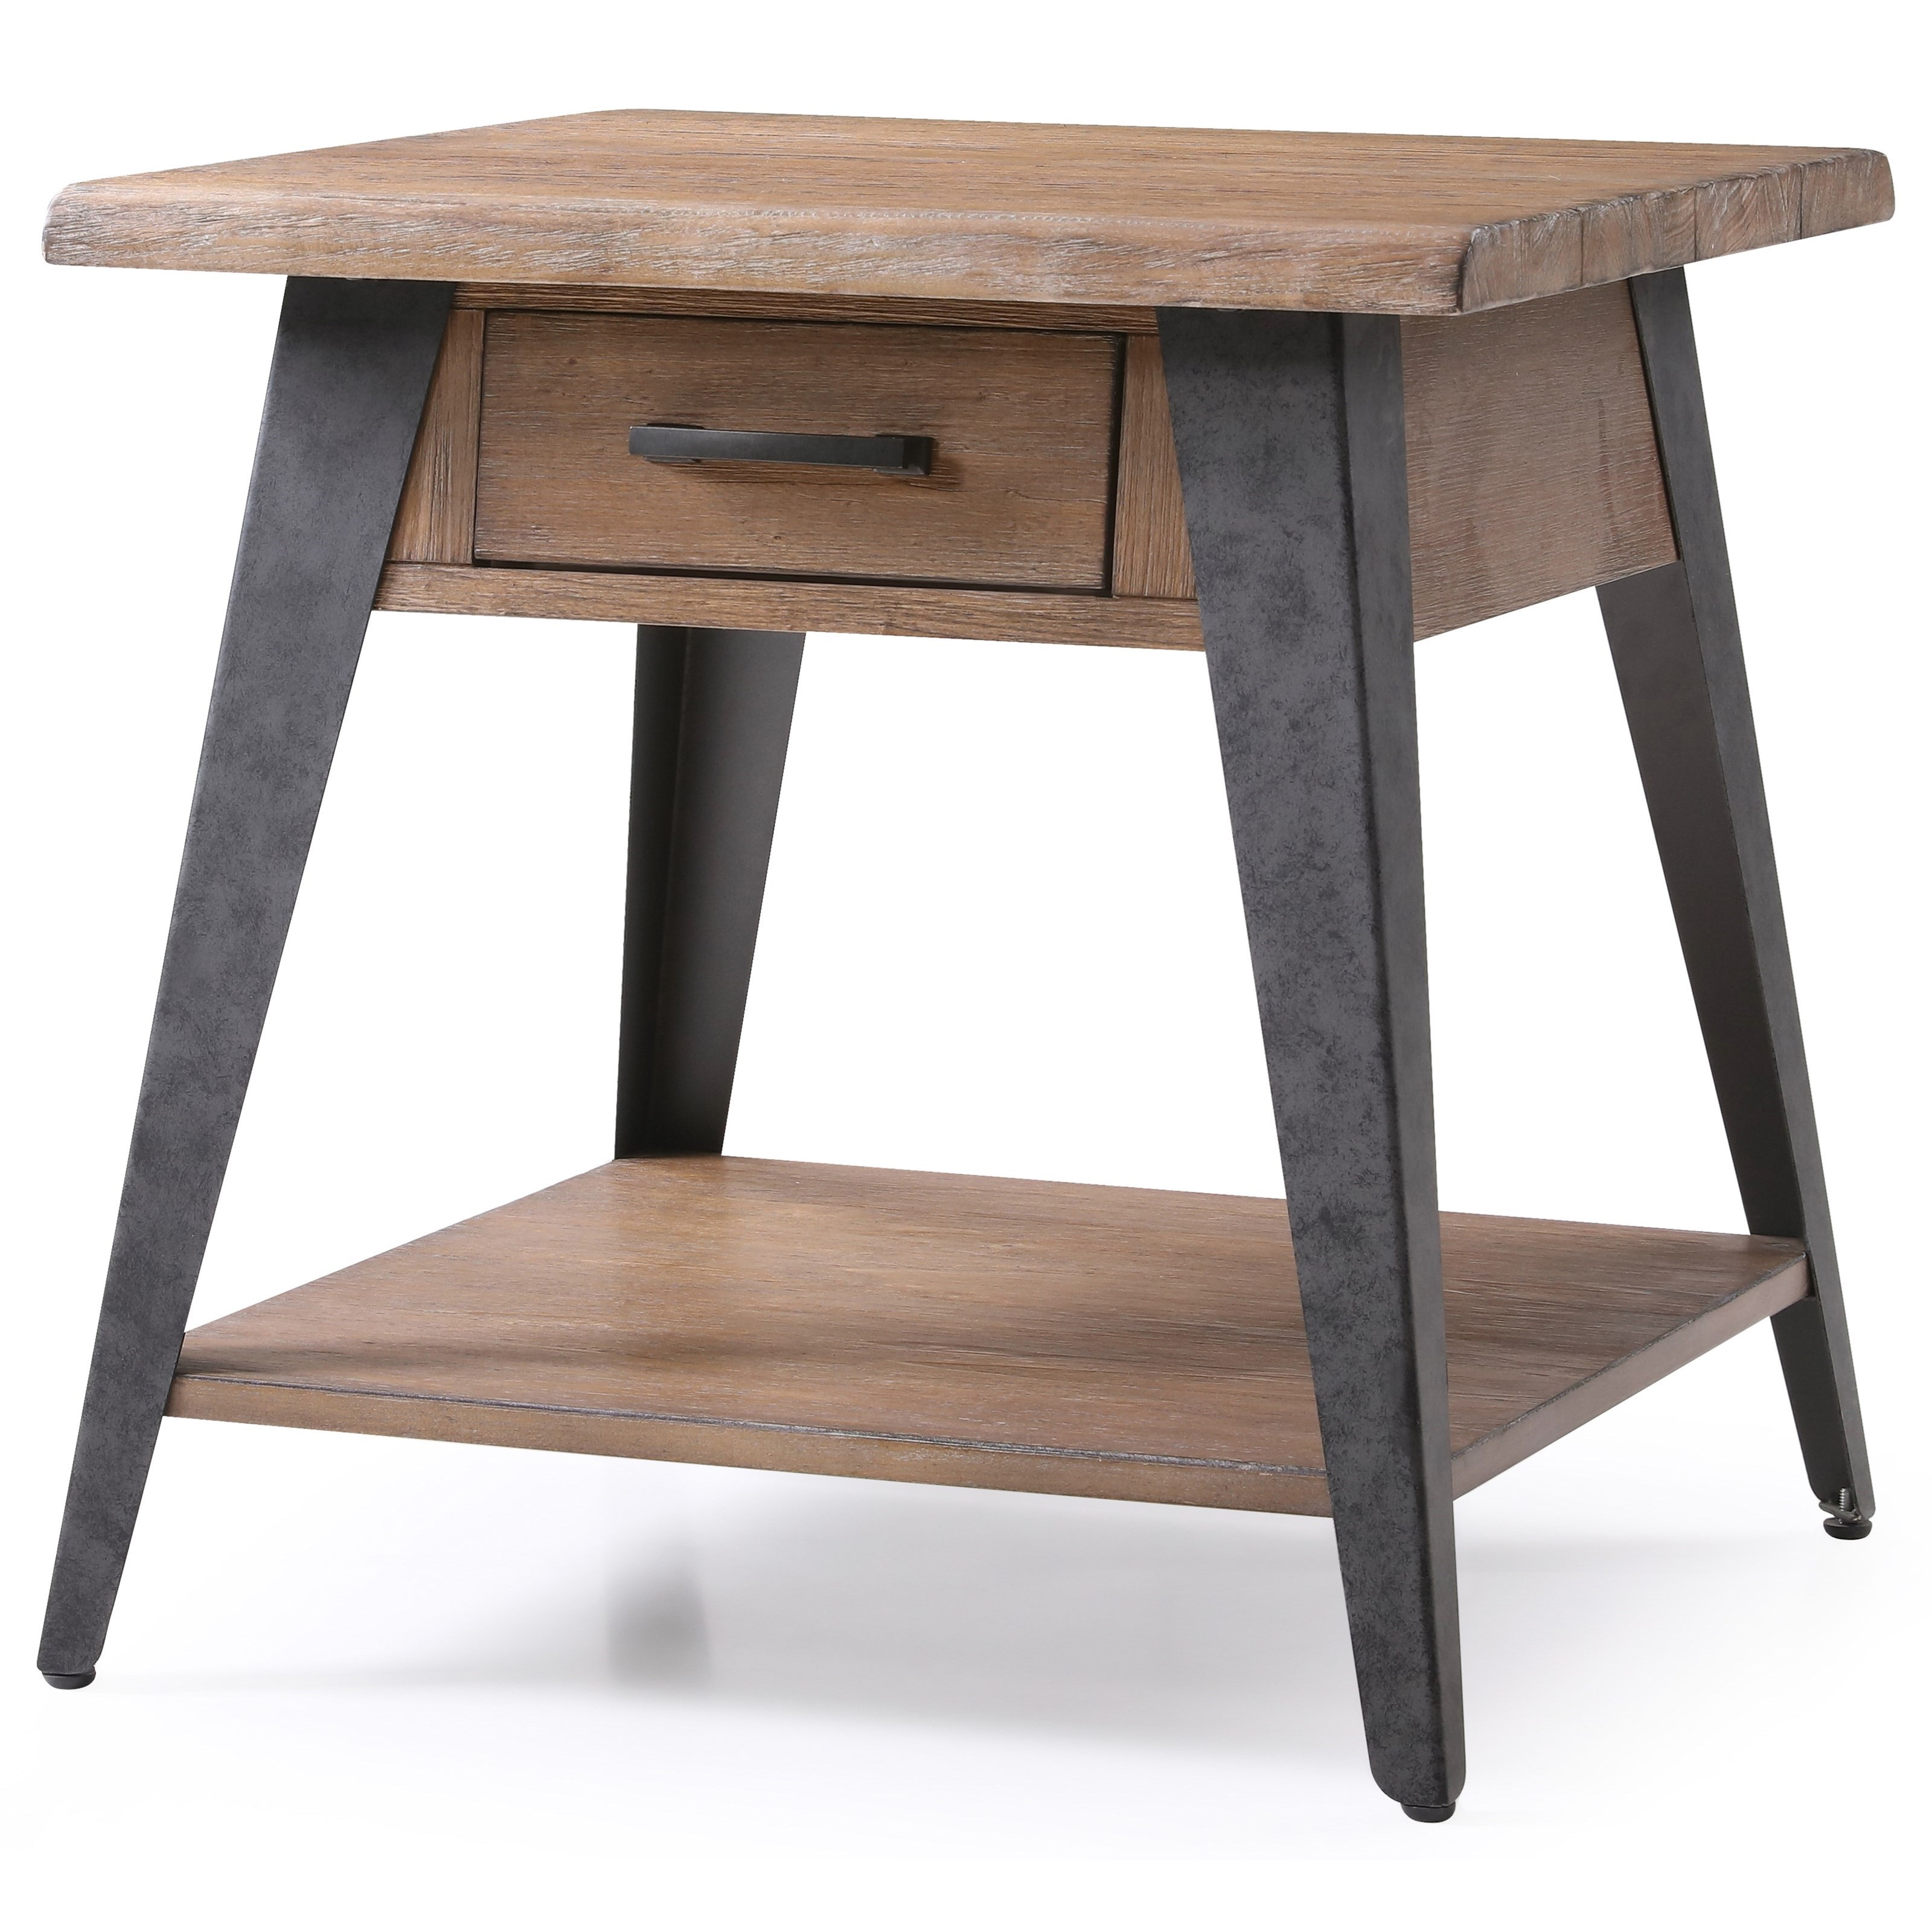 Harper's Mill End Table by Emerald at Northeast Factory Direct